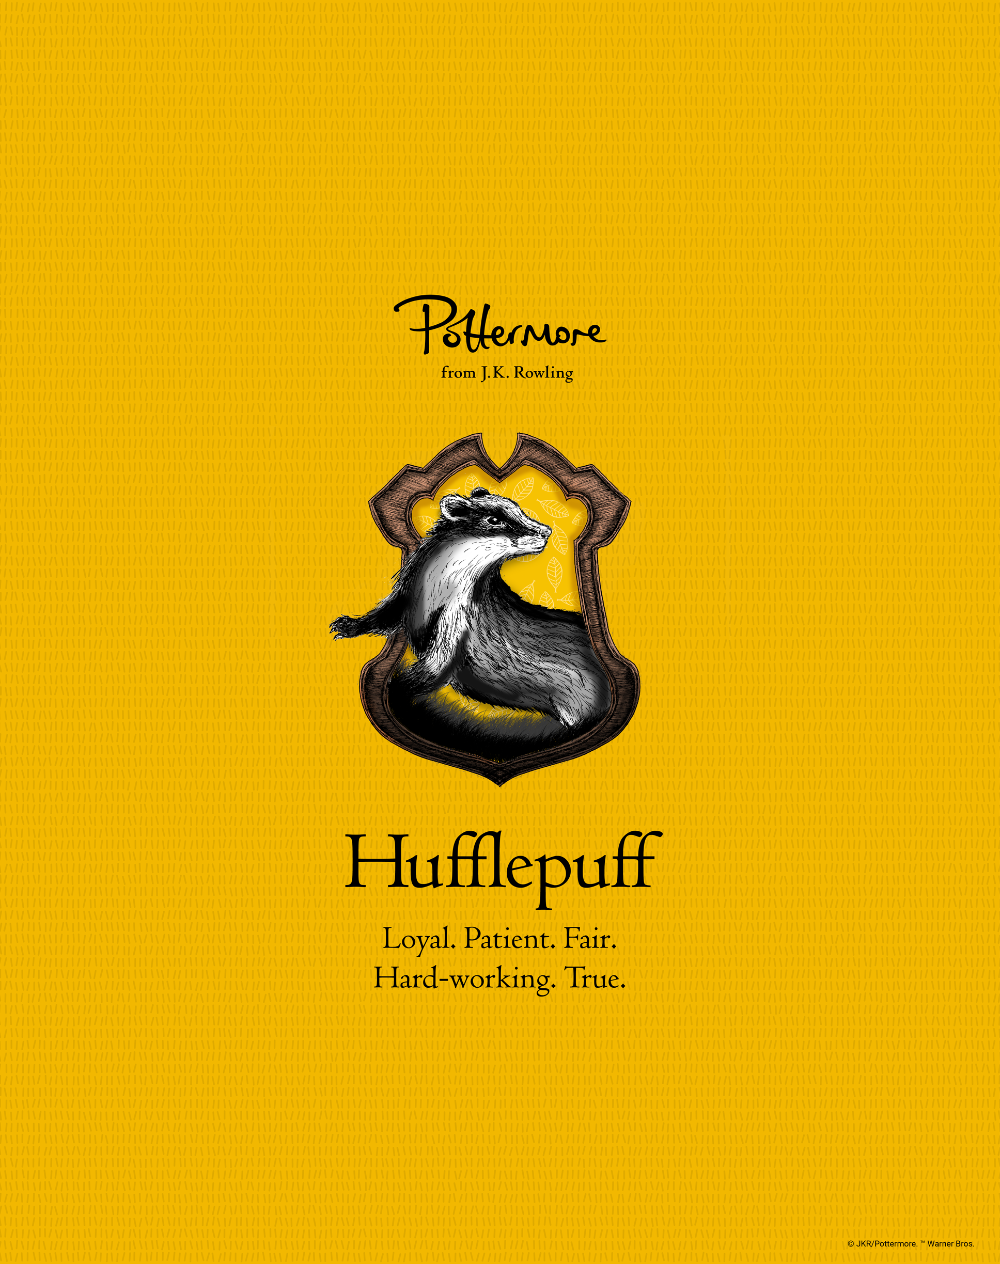 Test Maison Harry Potter Officiel Pottermore : maison, harry, potter, officiel, pottermore, Scamander, (Hufflepuff), Hogwarts, Harry, Potter, Funny,, Hufflepuff,, Hufflepuff, Wallpaper